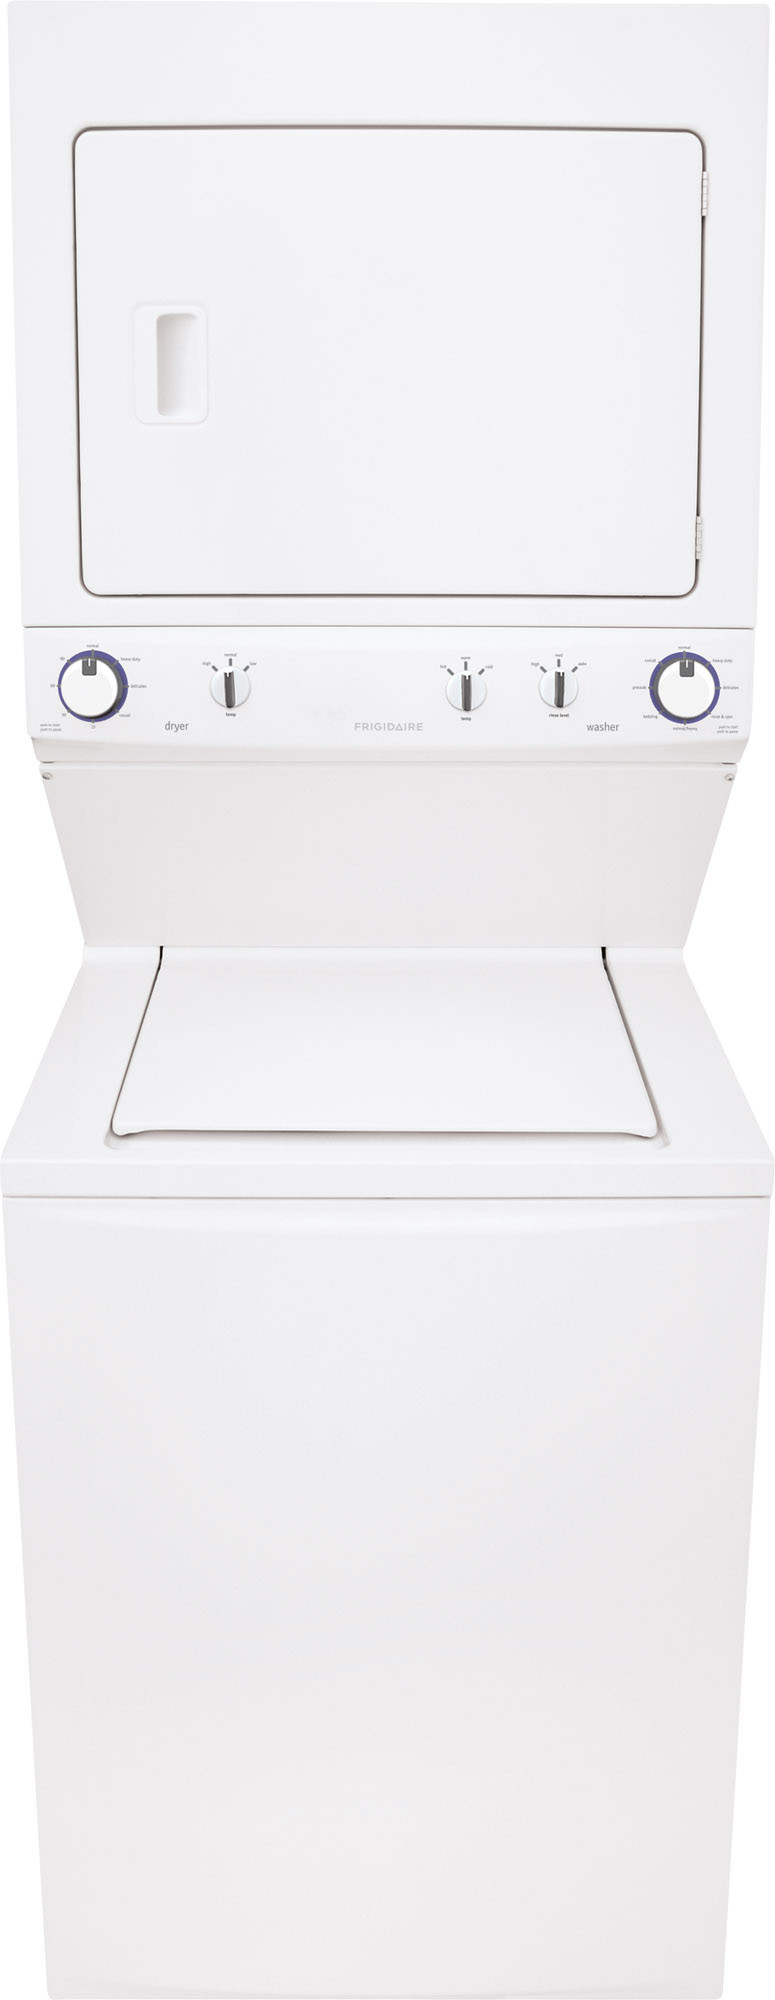 Frigidaire FFLE3911QW 27 Inch Electric Laundry Center with